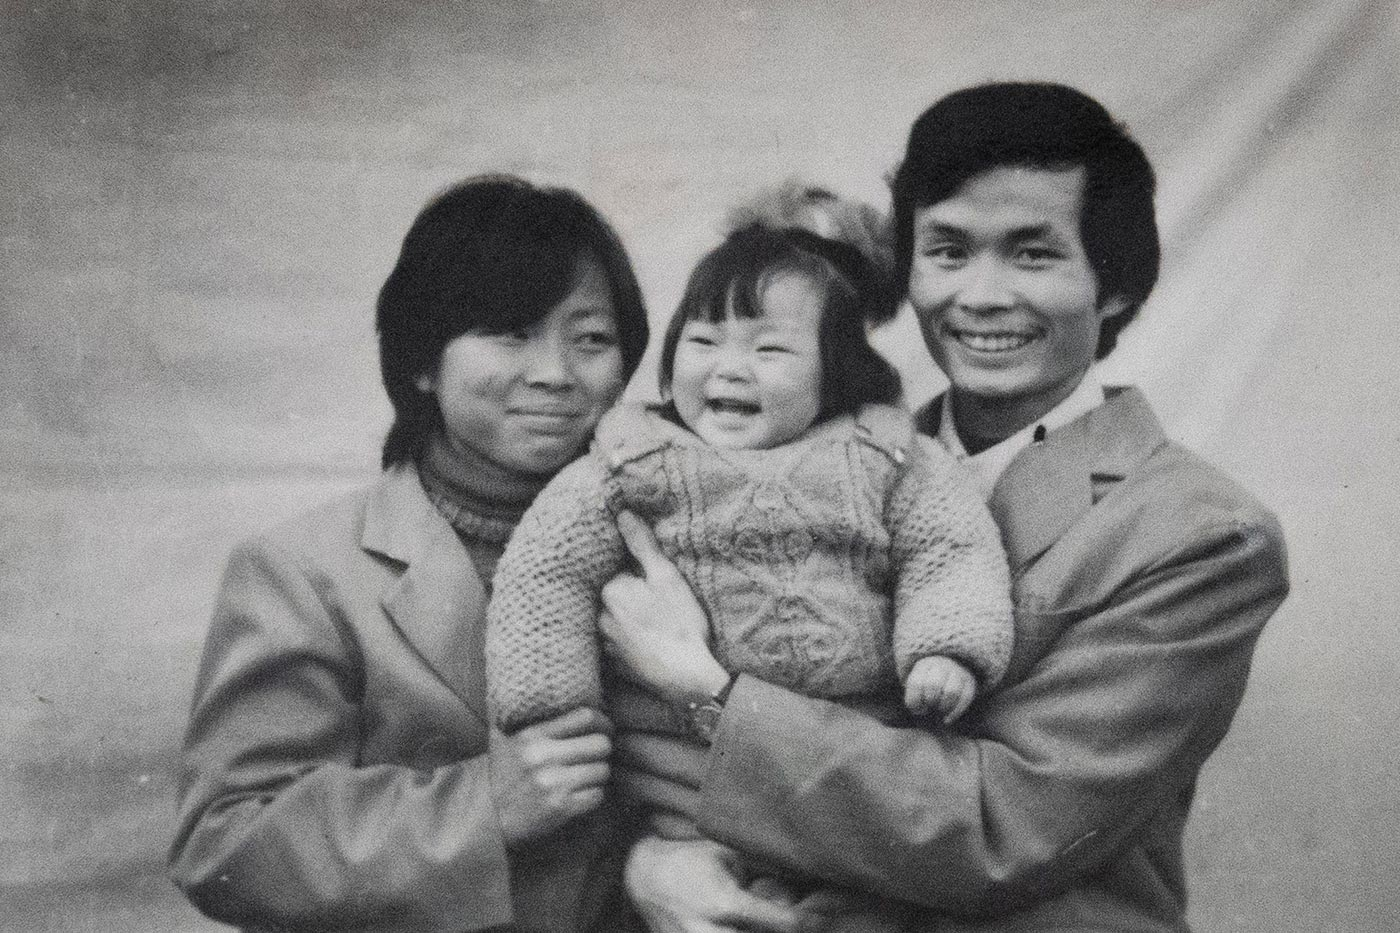 Nanfu Wang, at age 1, being held by her mother and father.